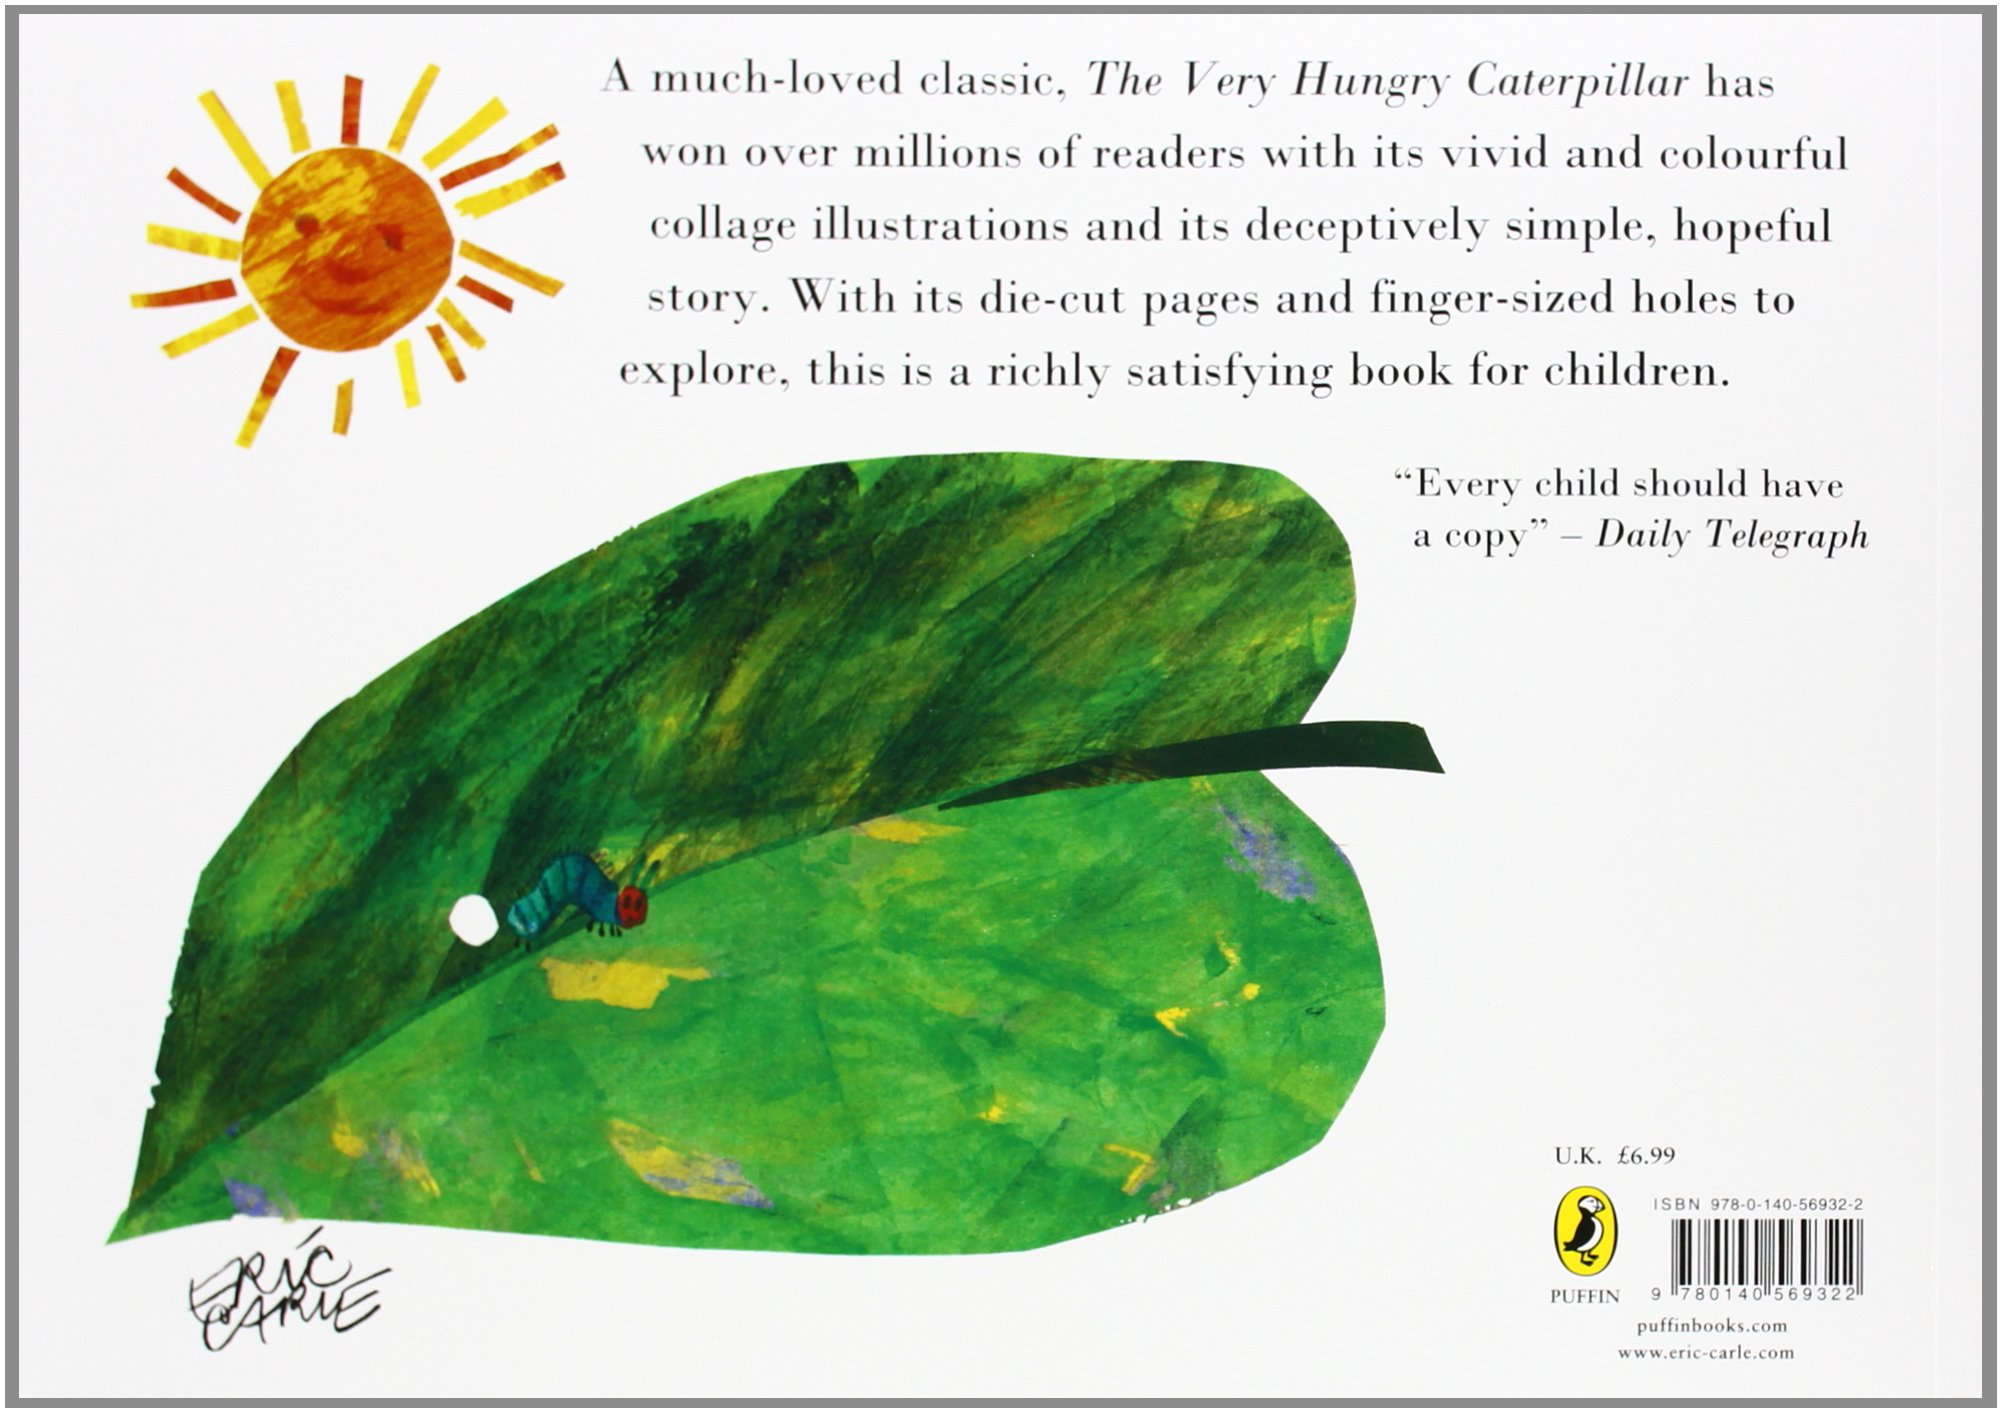 2015_10_01_archive on The Very Hungry Caterpillar Food Diary